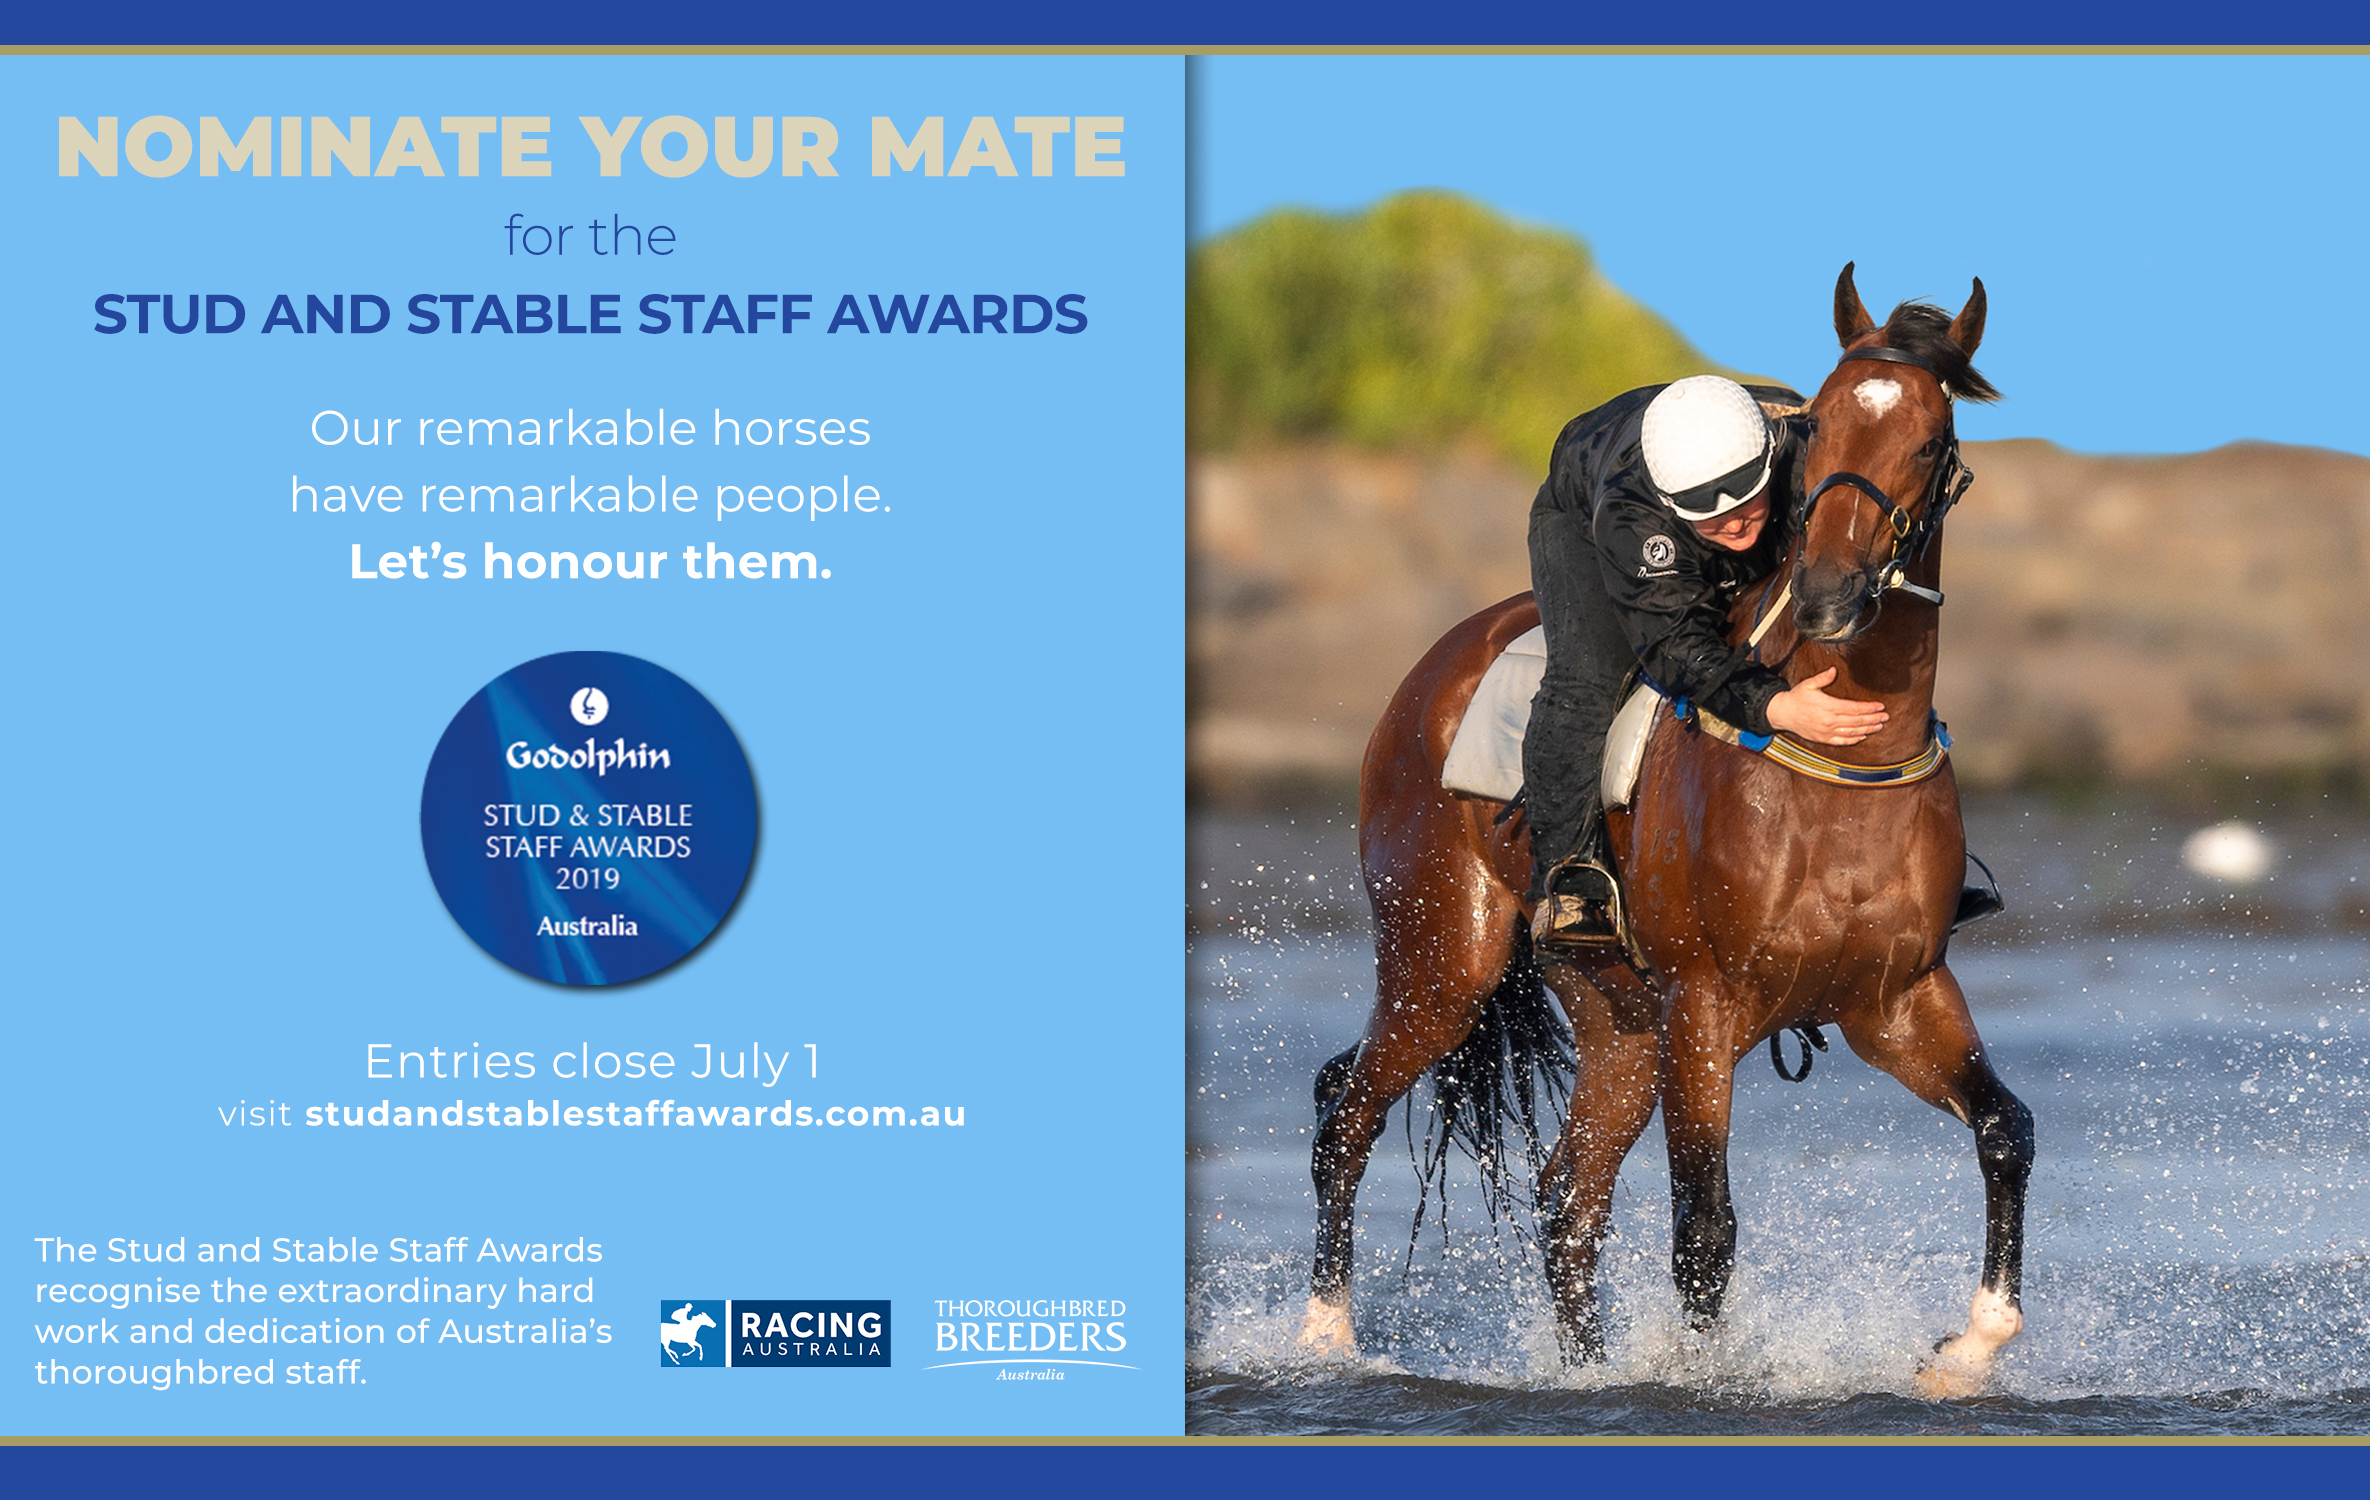 Godolphin Stud and Stable Staff Award nominations are now open